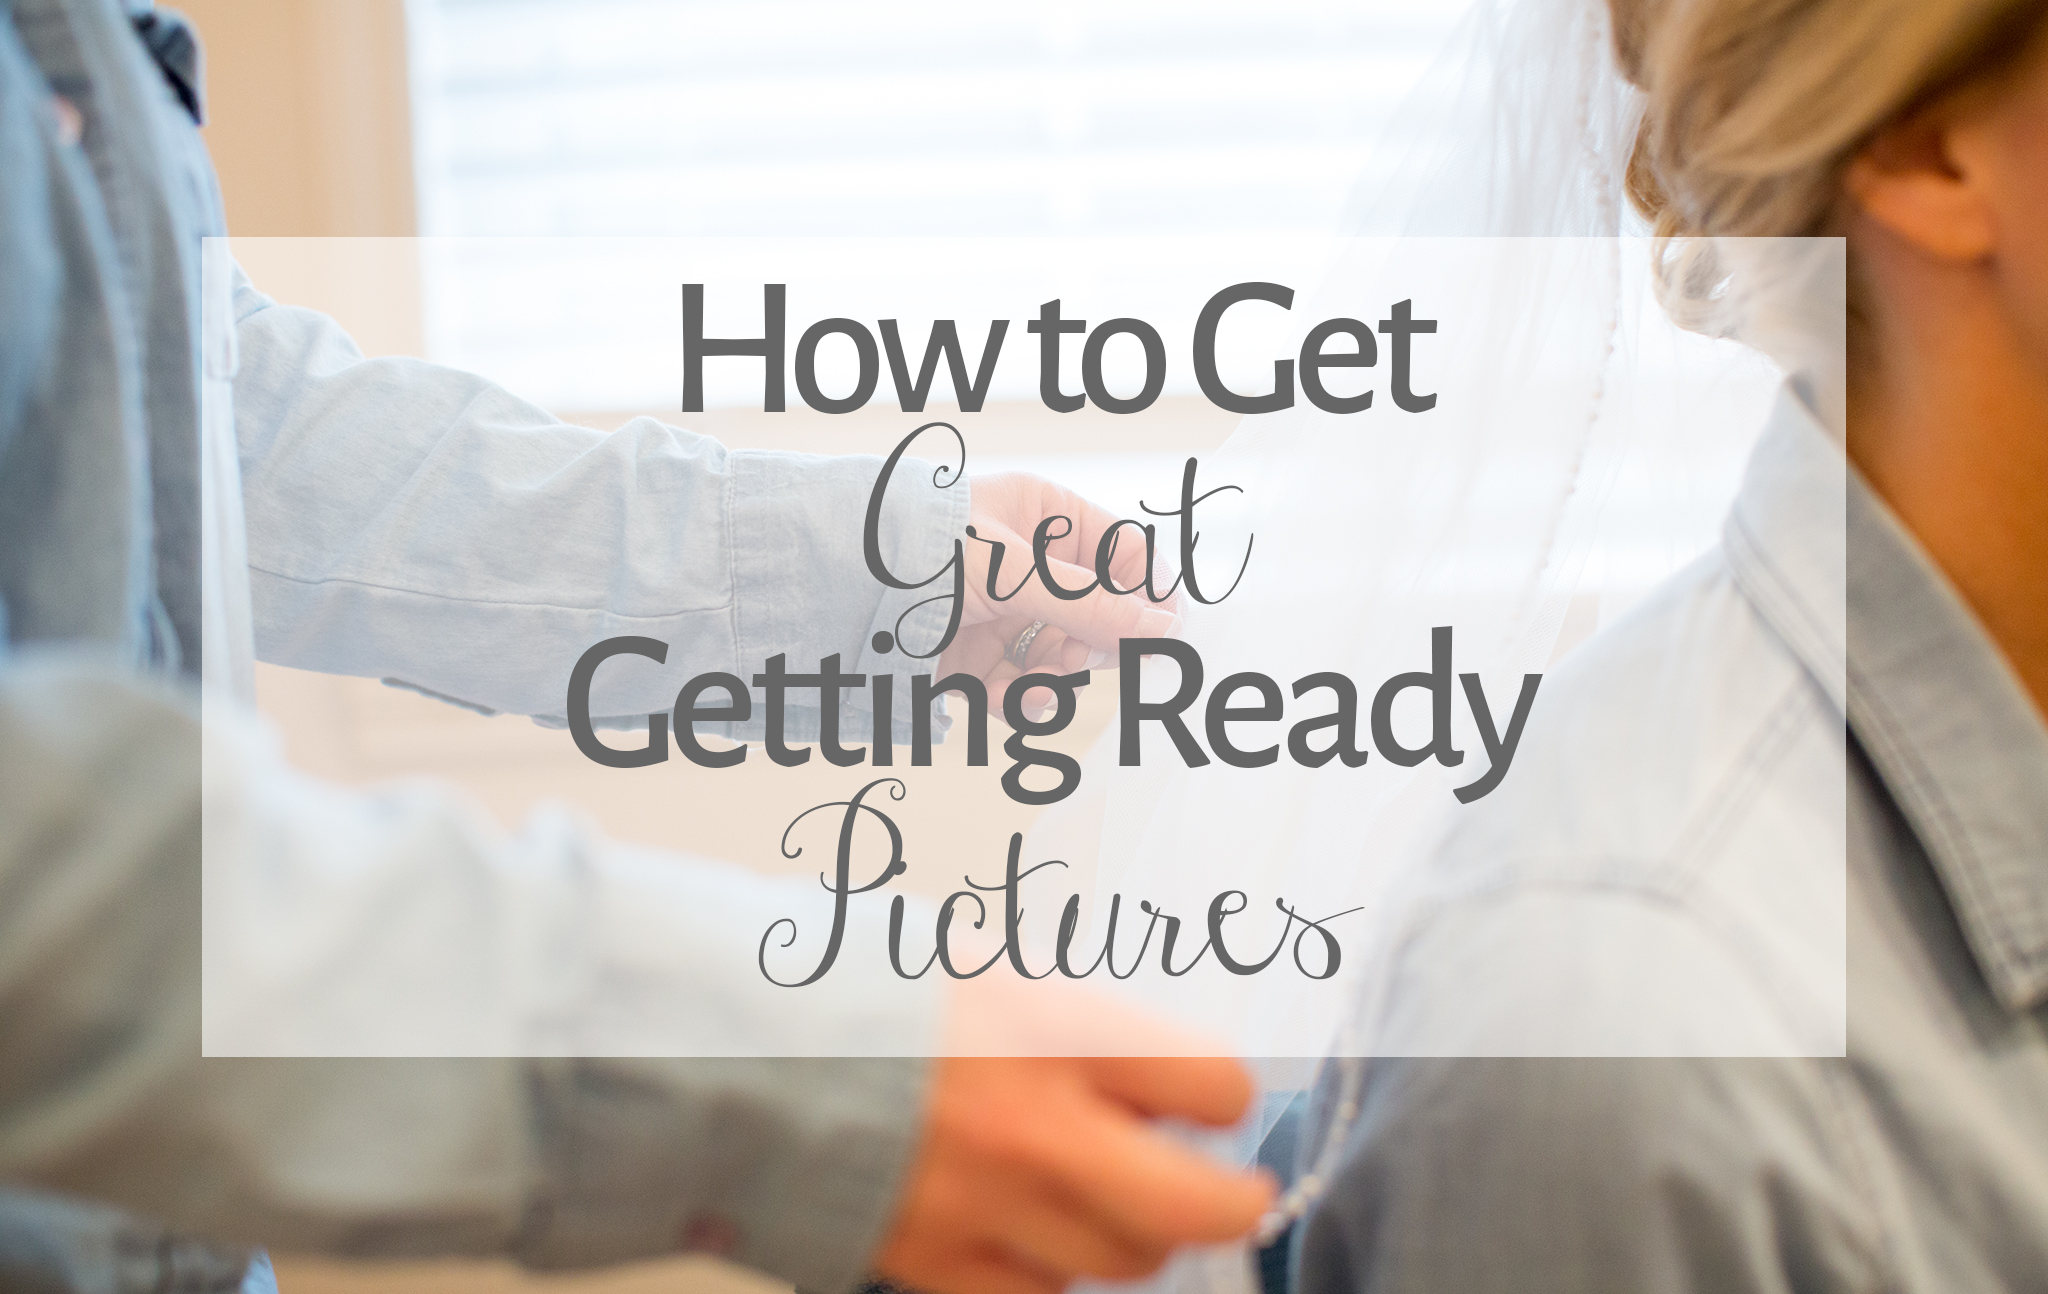 Get_Great_Getting_Ready_Pictures